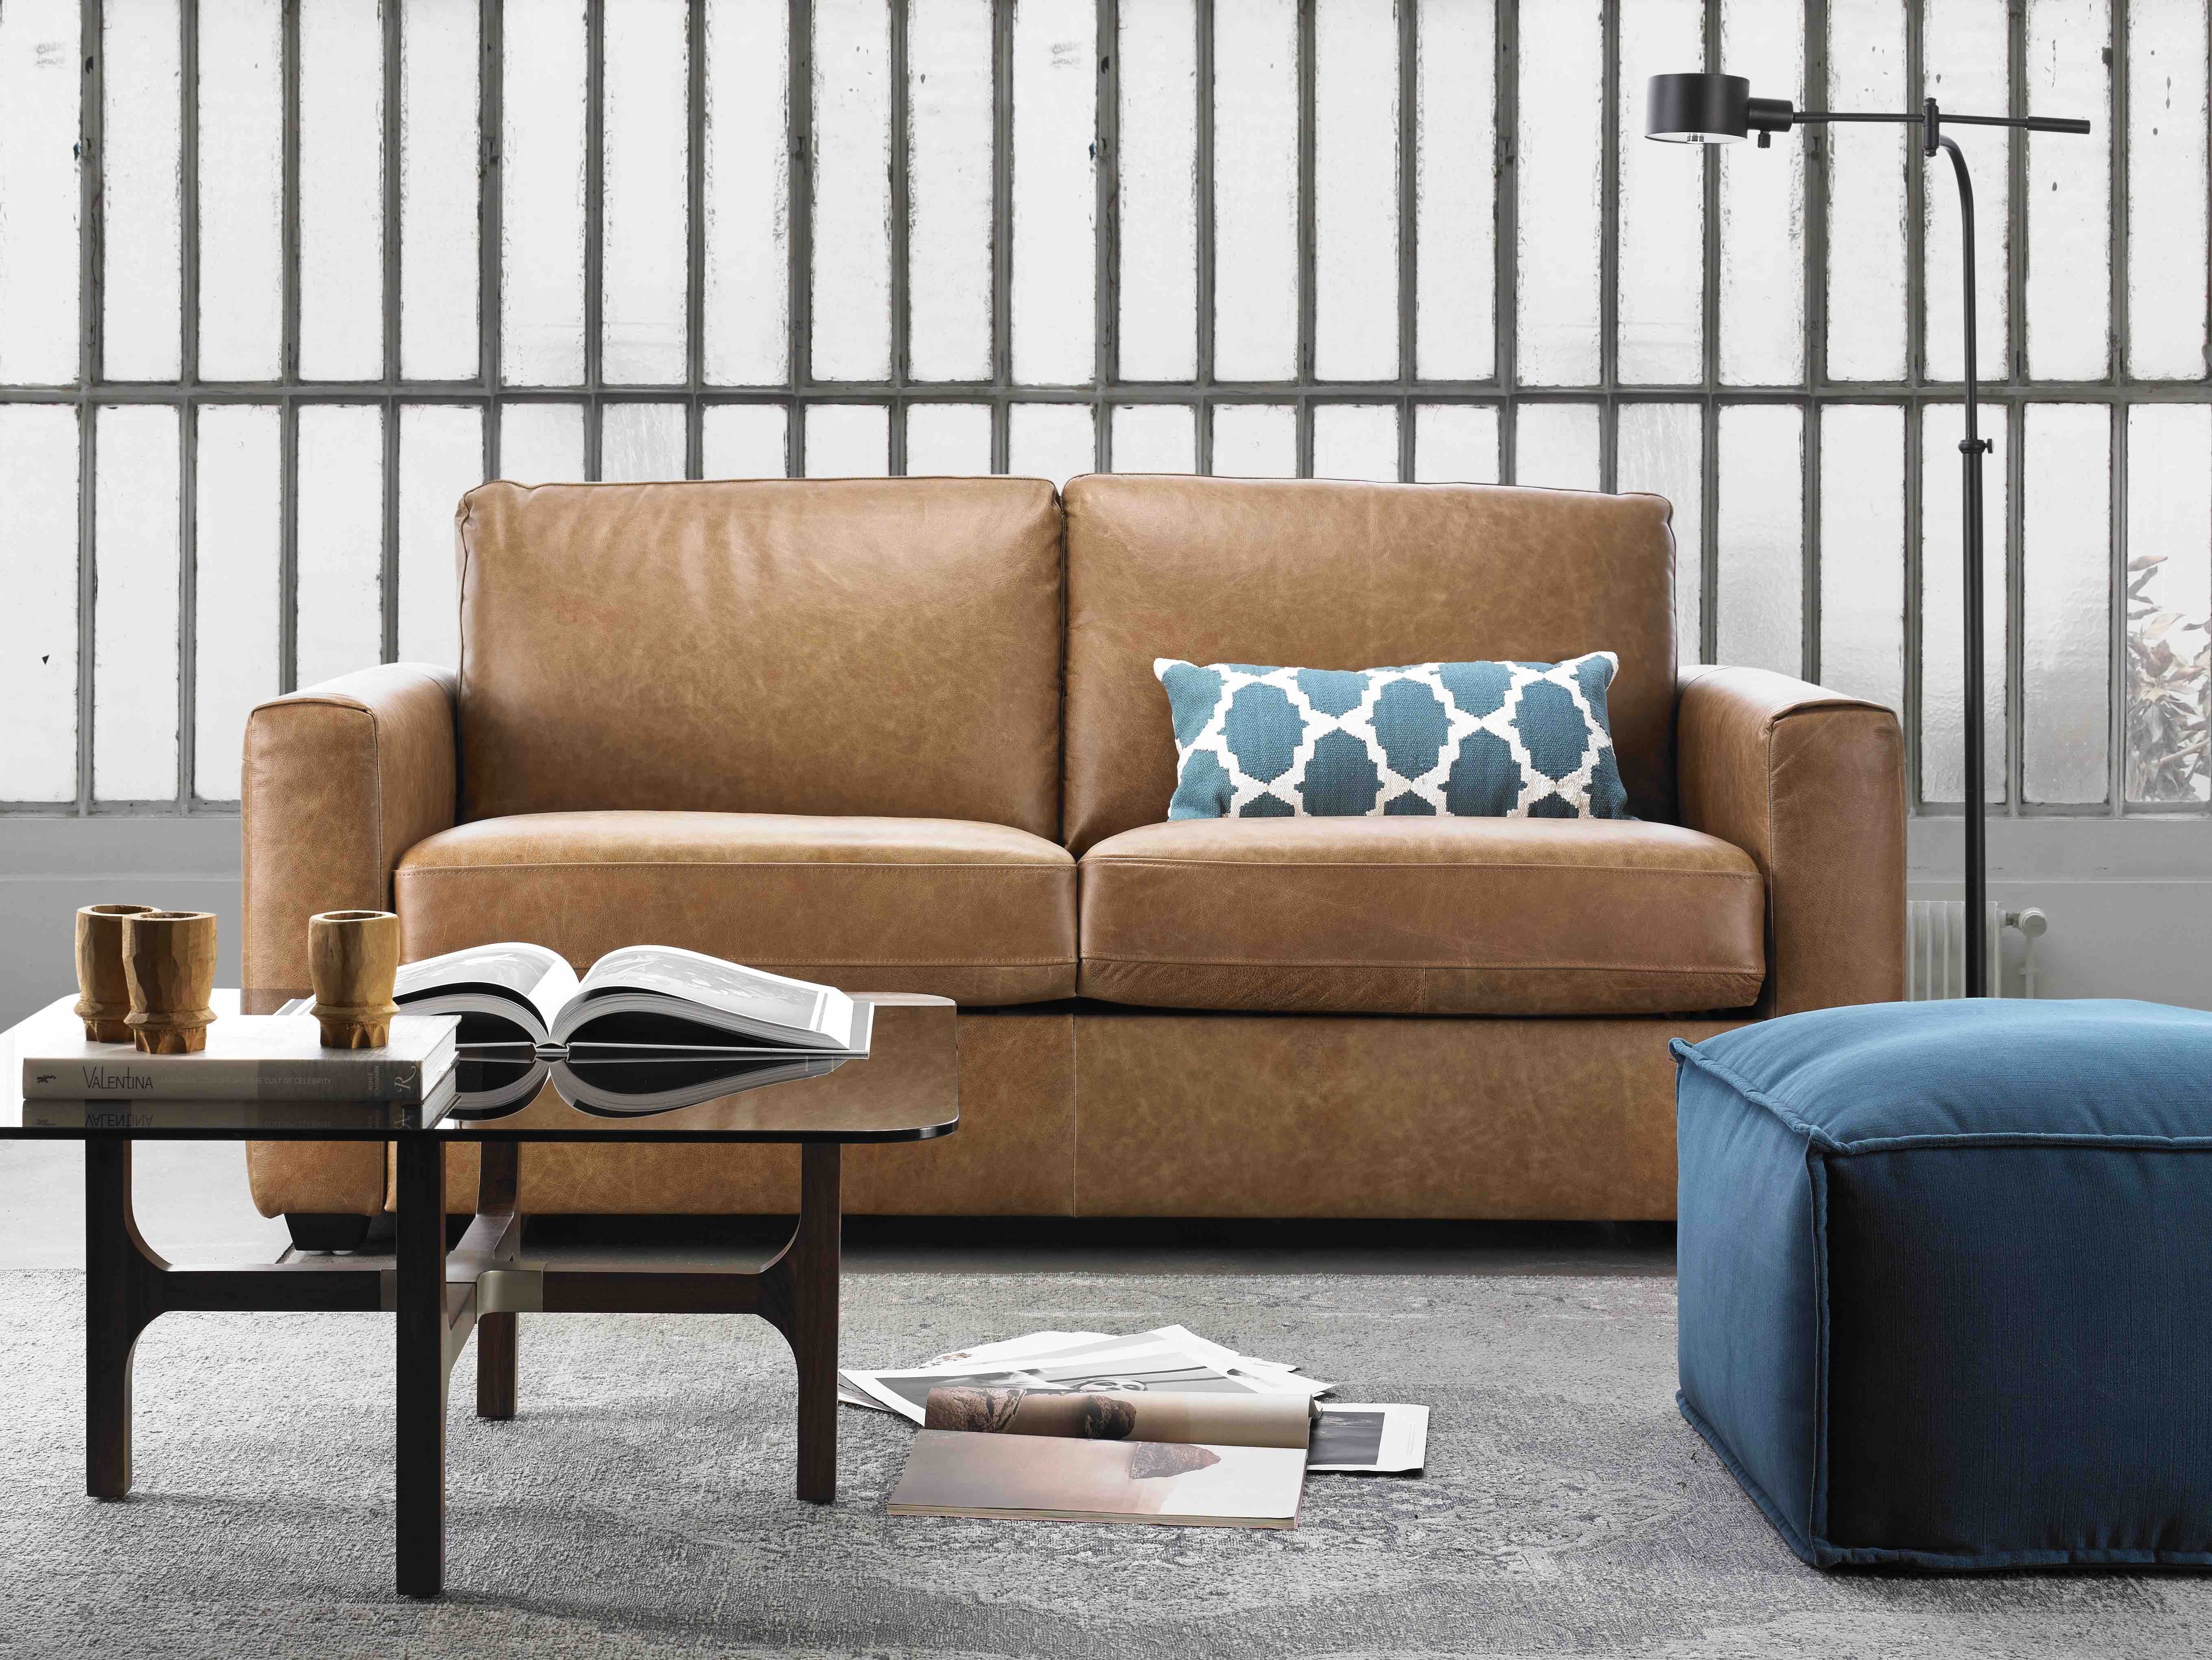 Morphee Canape Lit Love Seat Leather Sofa Bed Sofa Bed